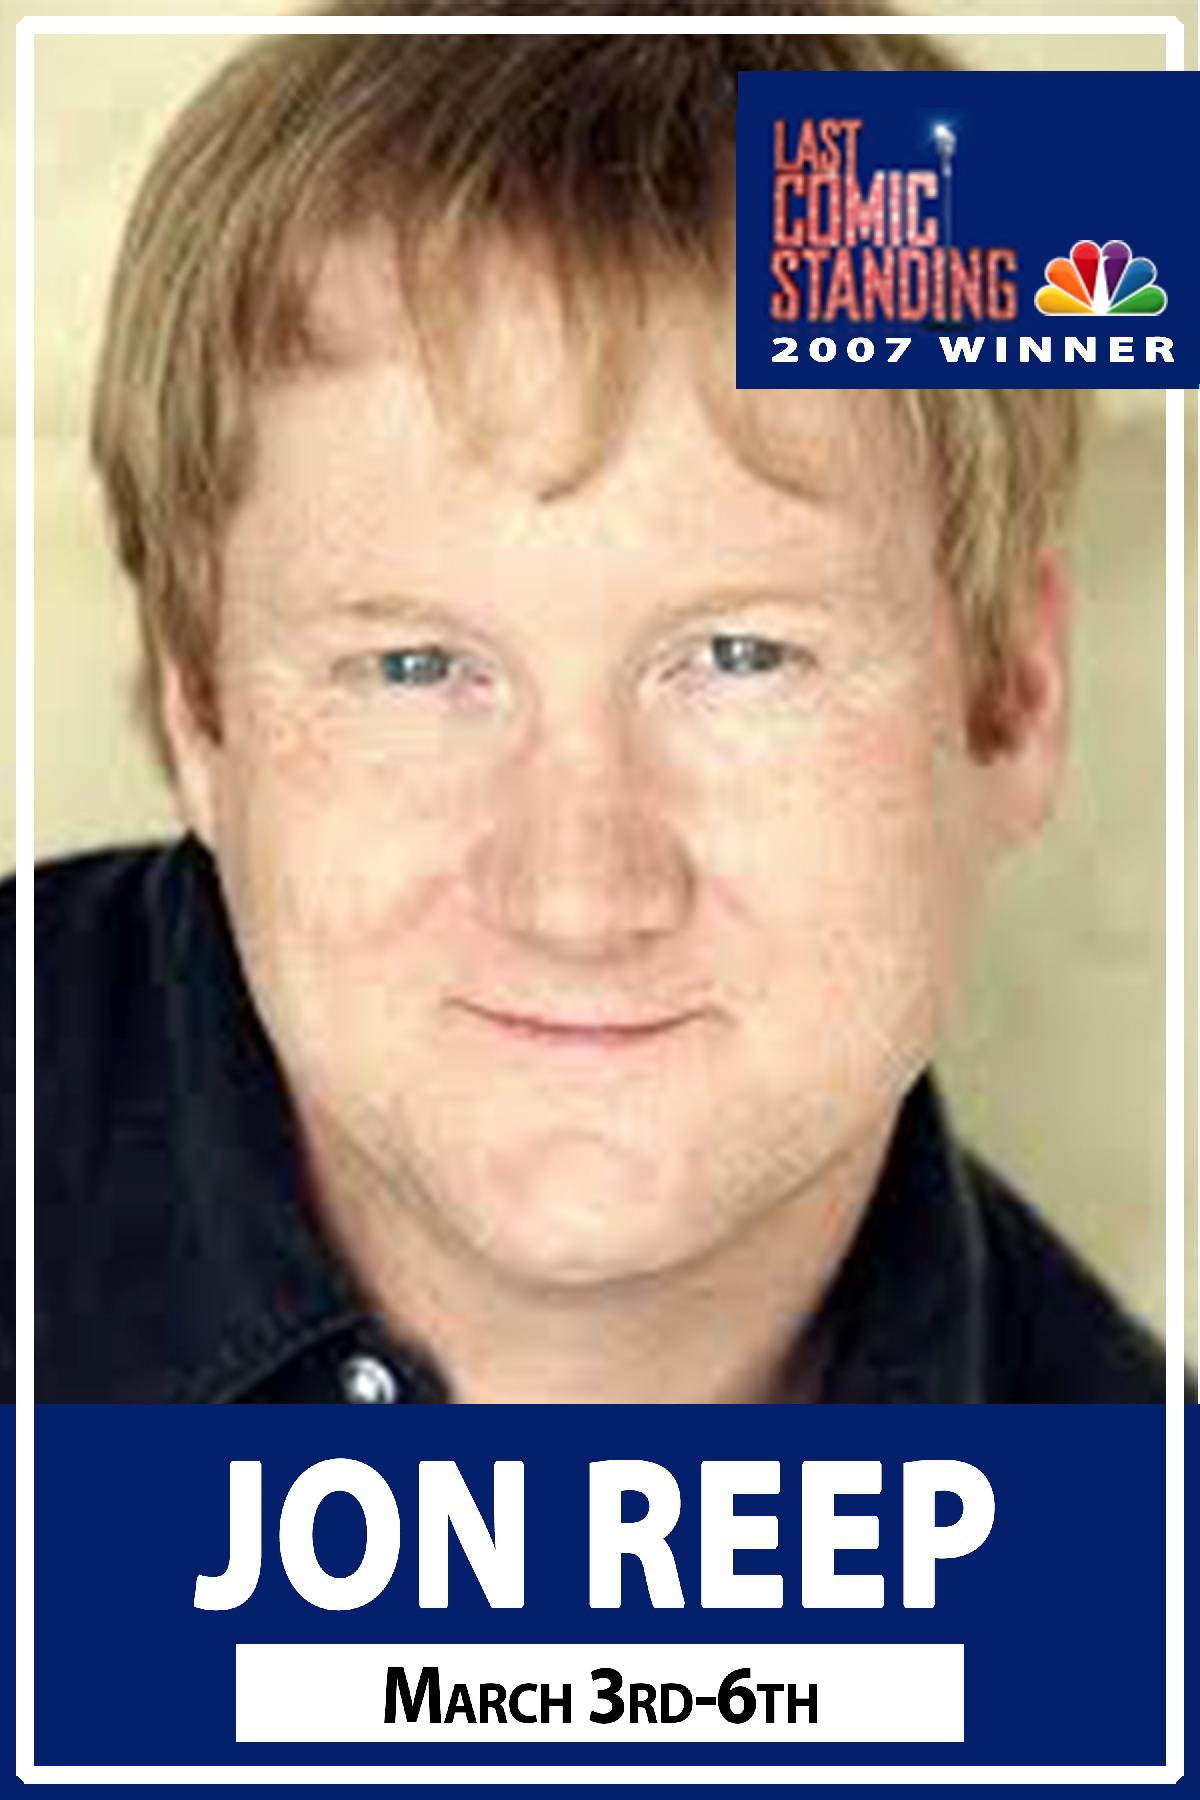 Jon Reep winner Last Comic Standing 2007 live at Zanies Comedy Club March 3-6, 2016